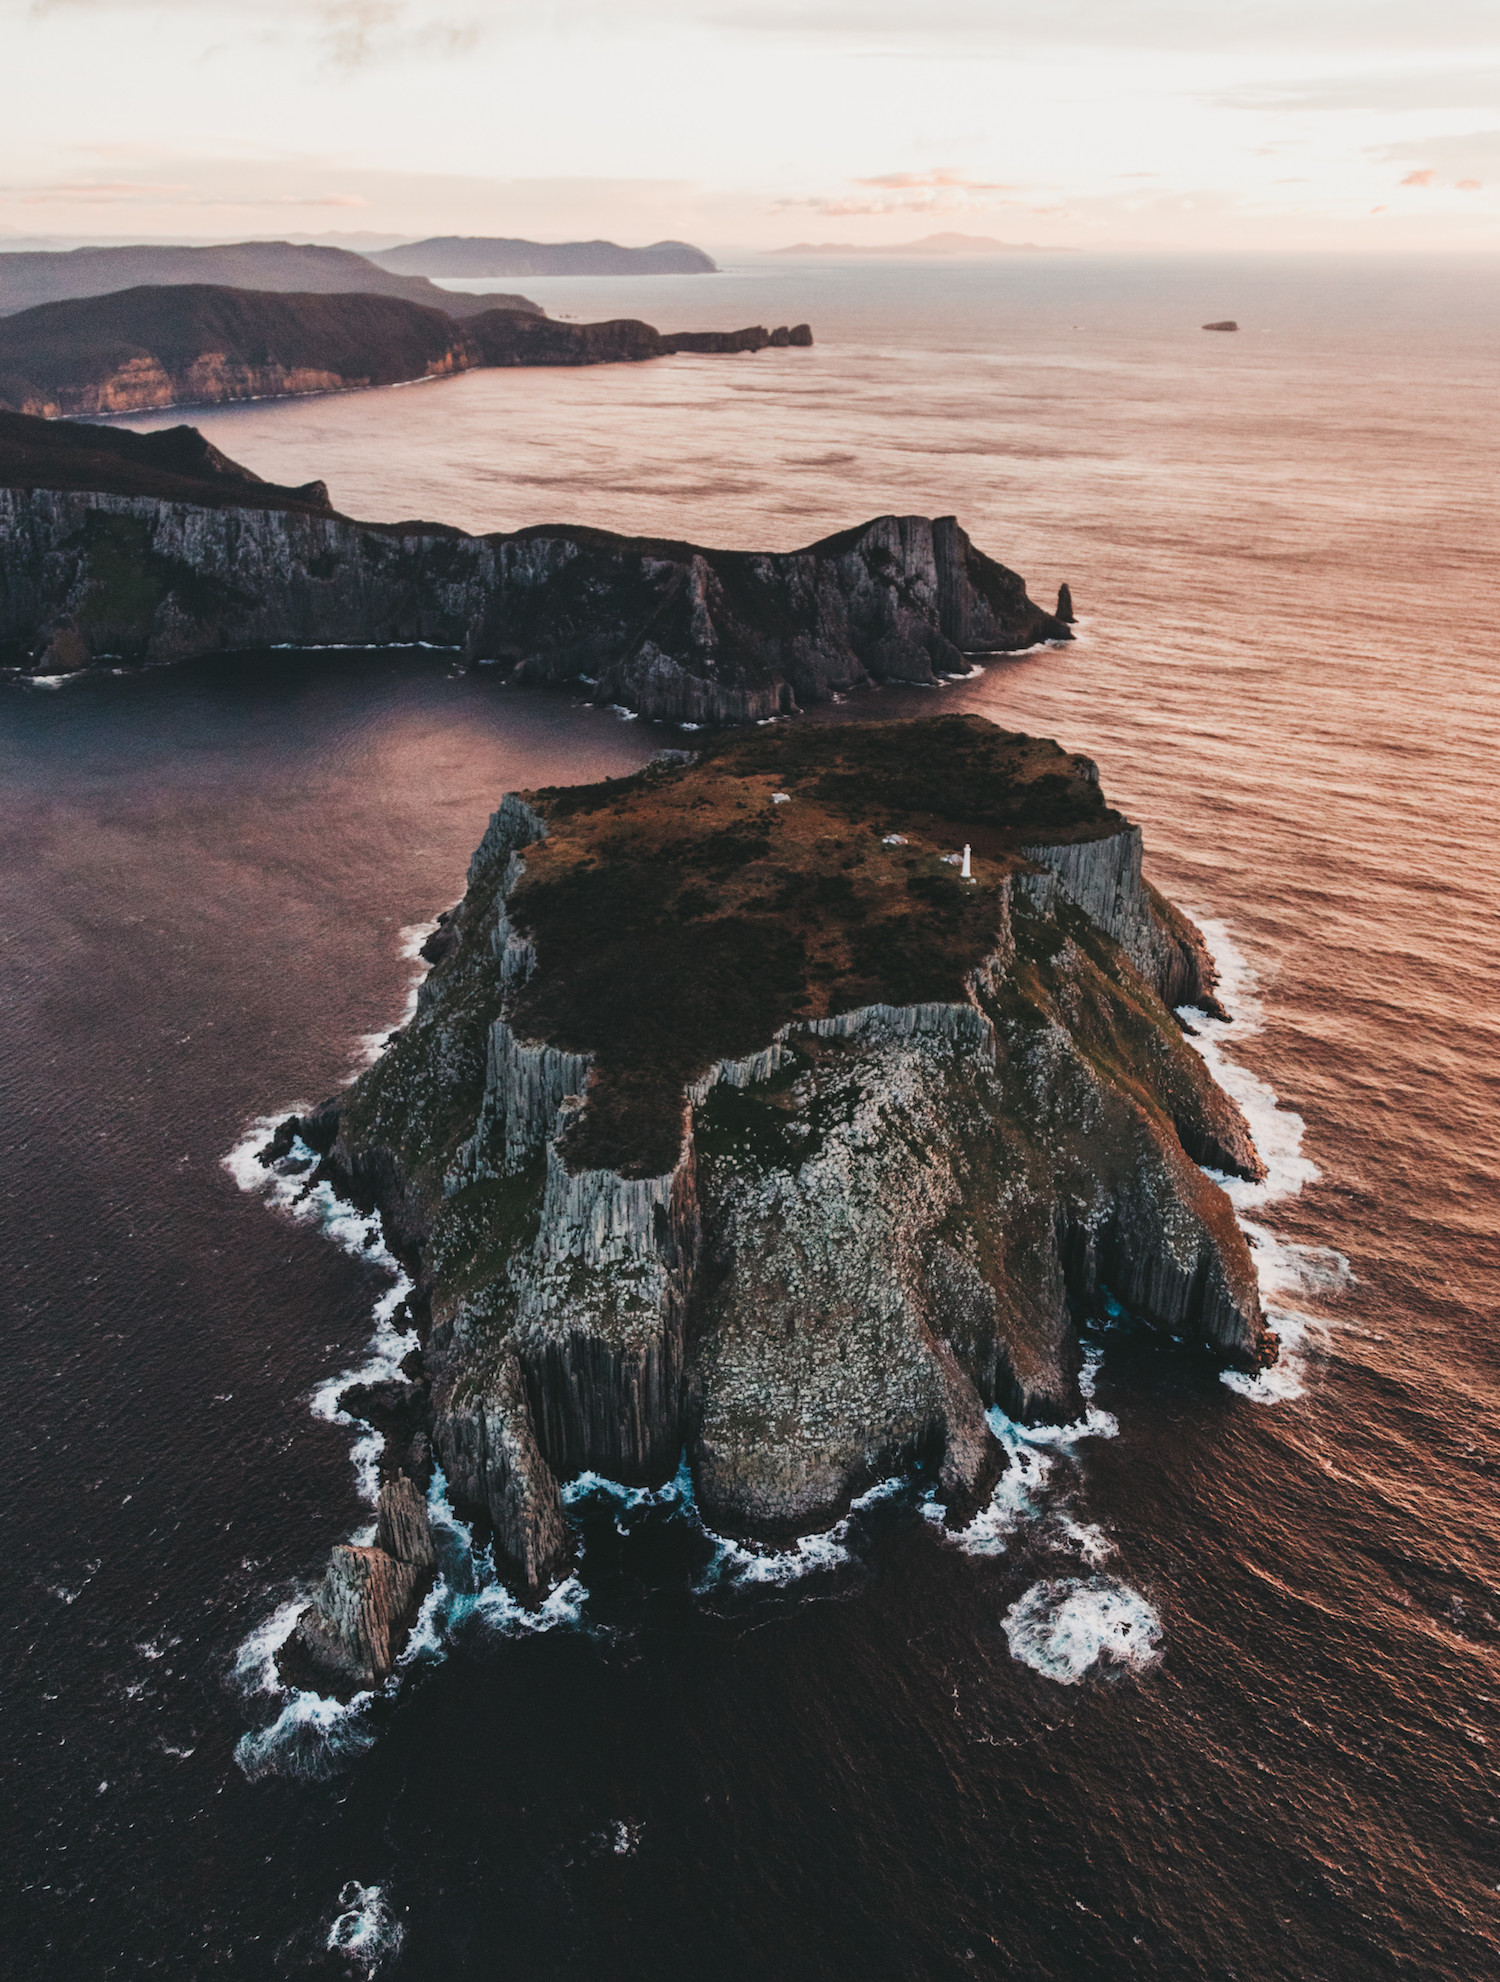 An aerial view of the Three Capes Track in Tasmania, Australia.